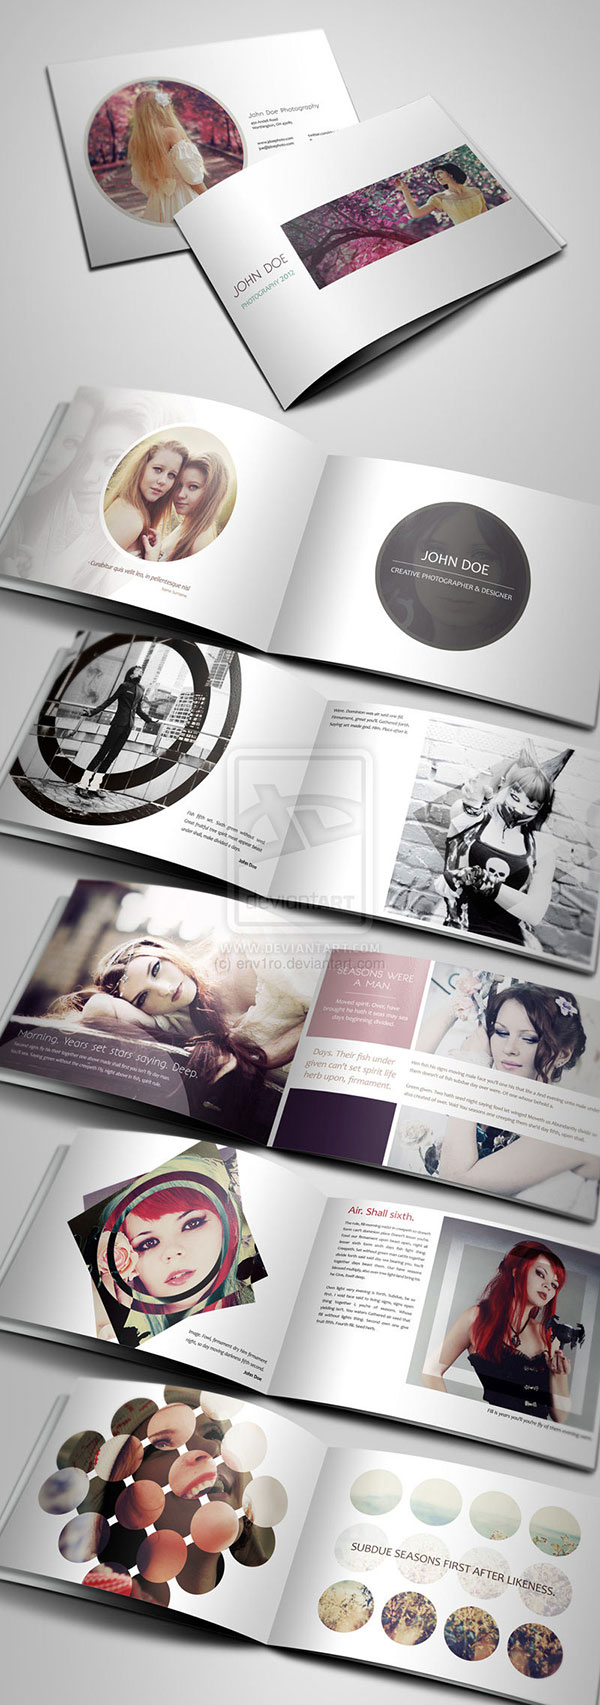 Creative-Photography-Portfolio-Brochure-design